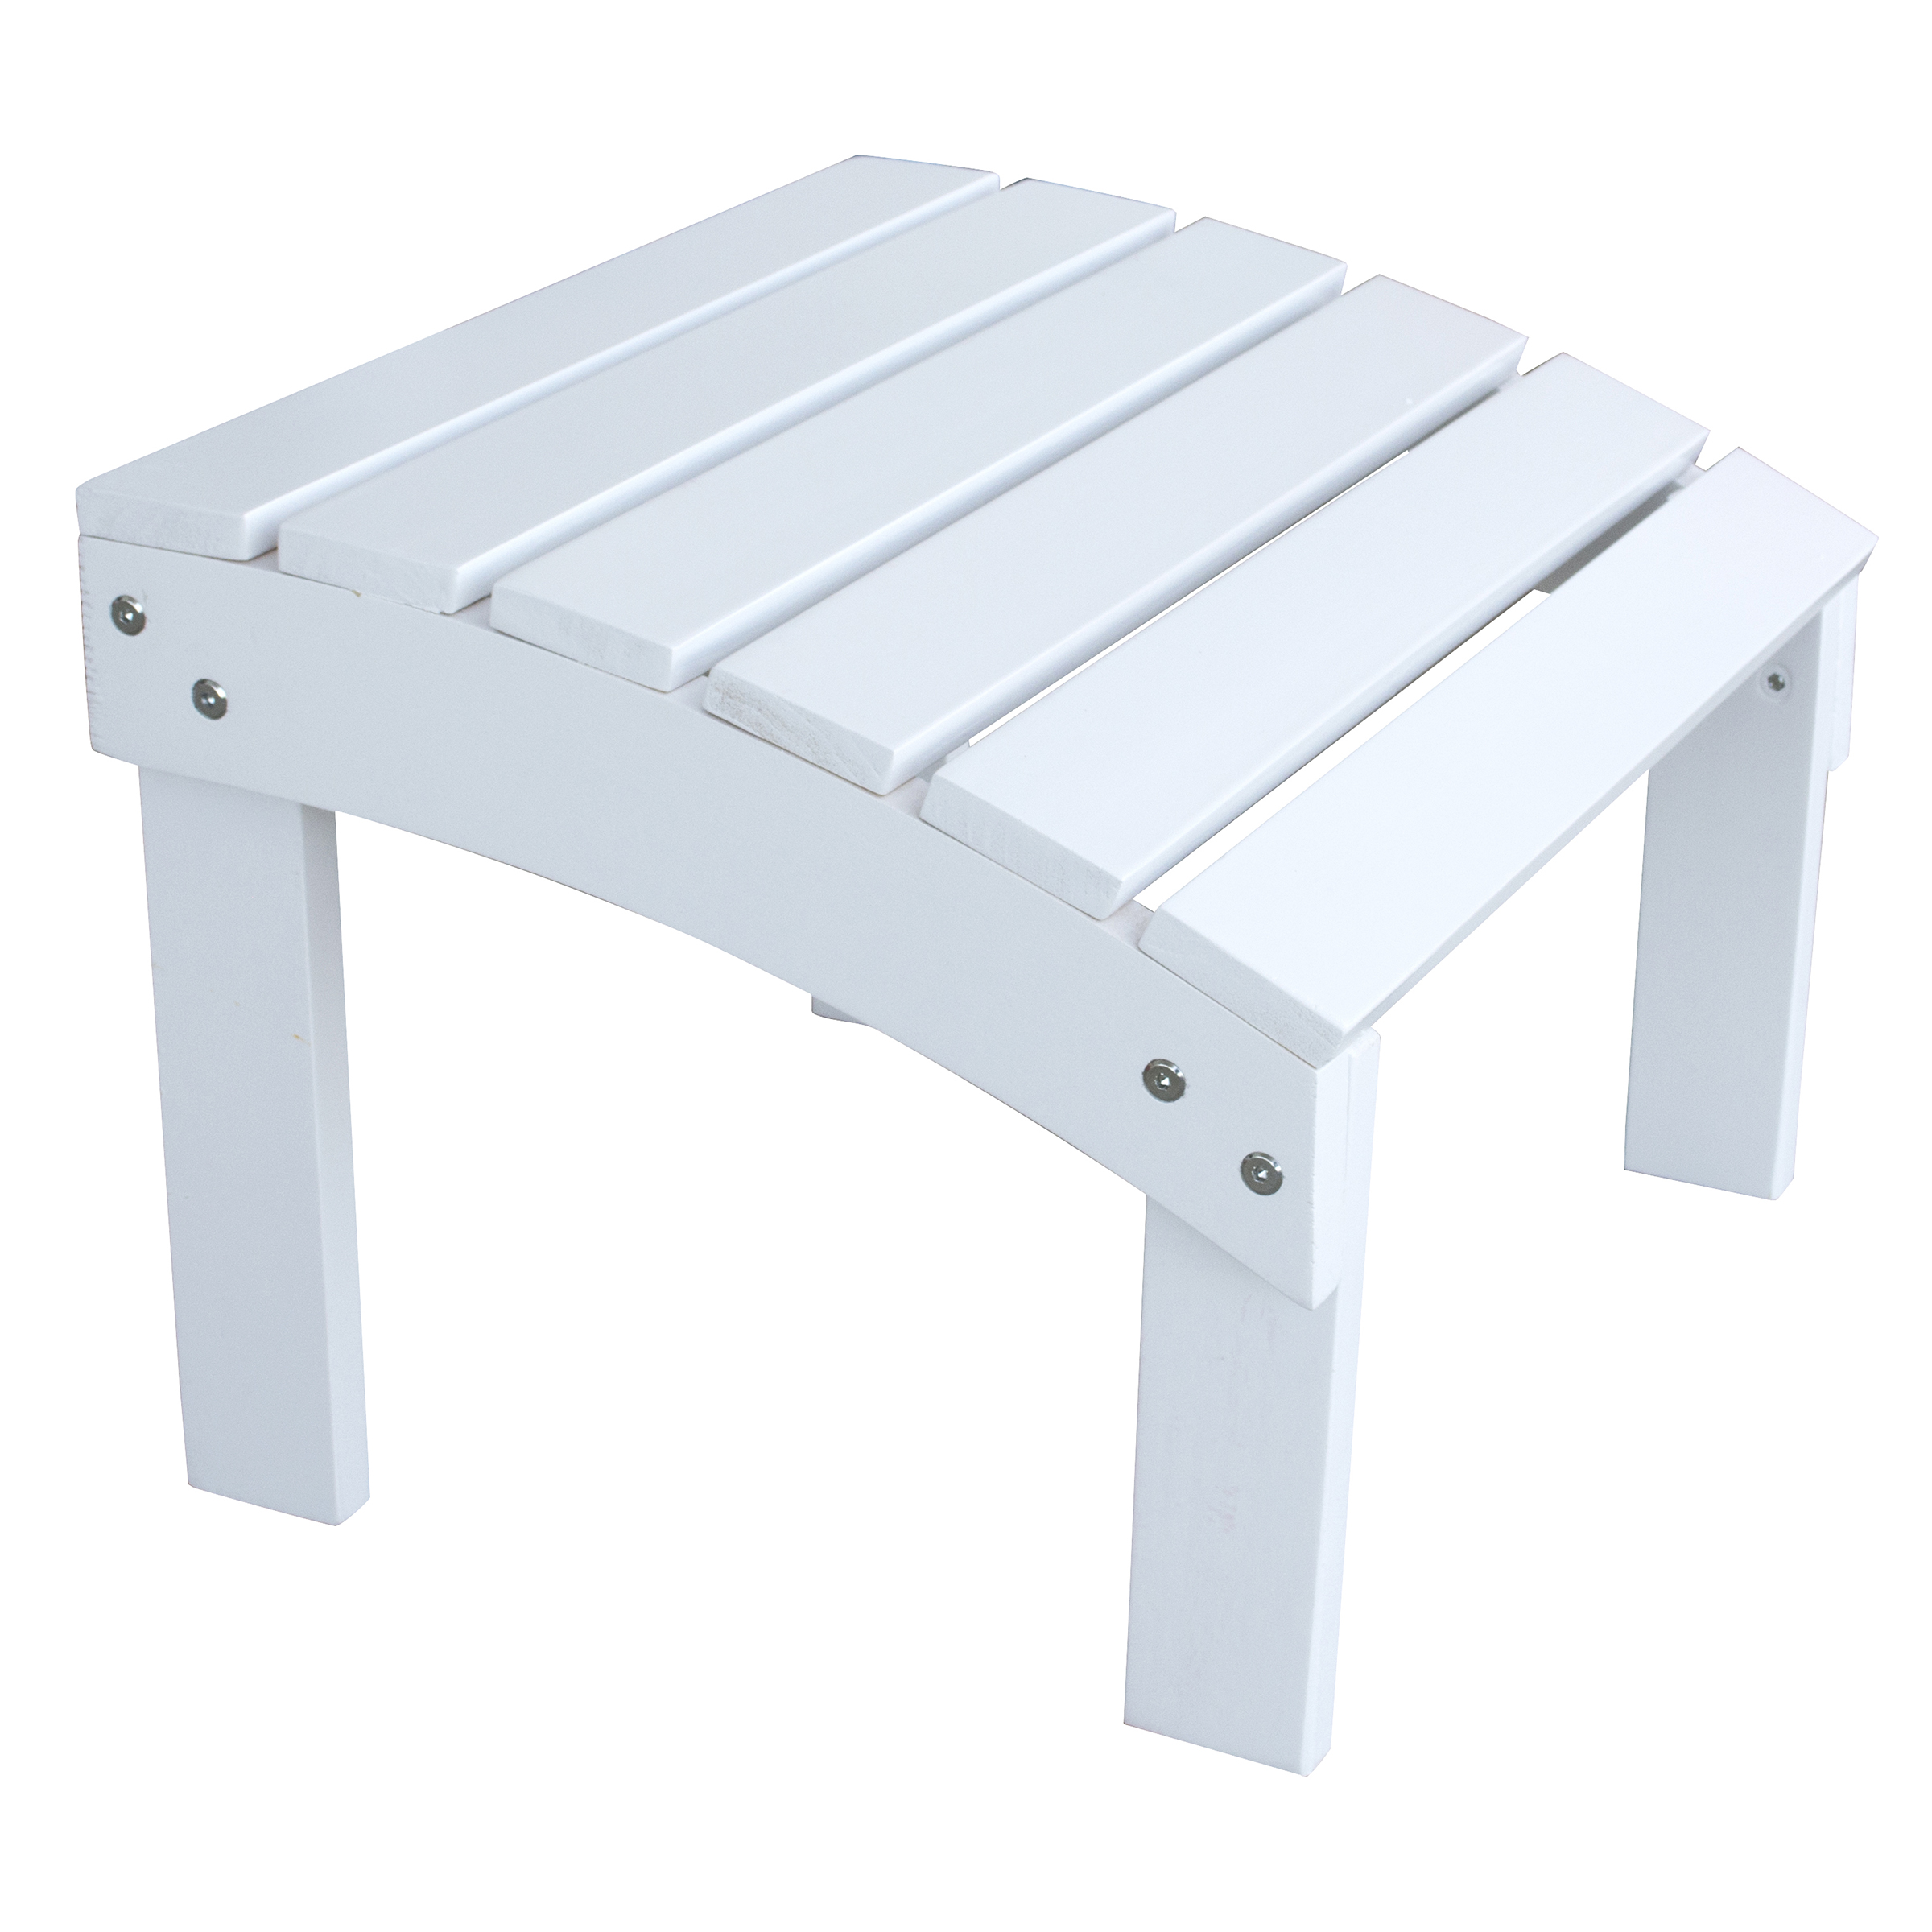 Solid Wood Adirondack Footrest Ottoman with Painted Finish - White